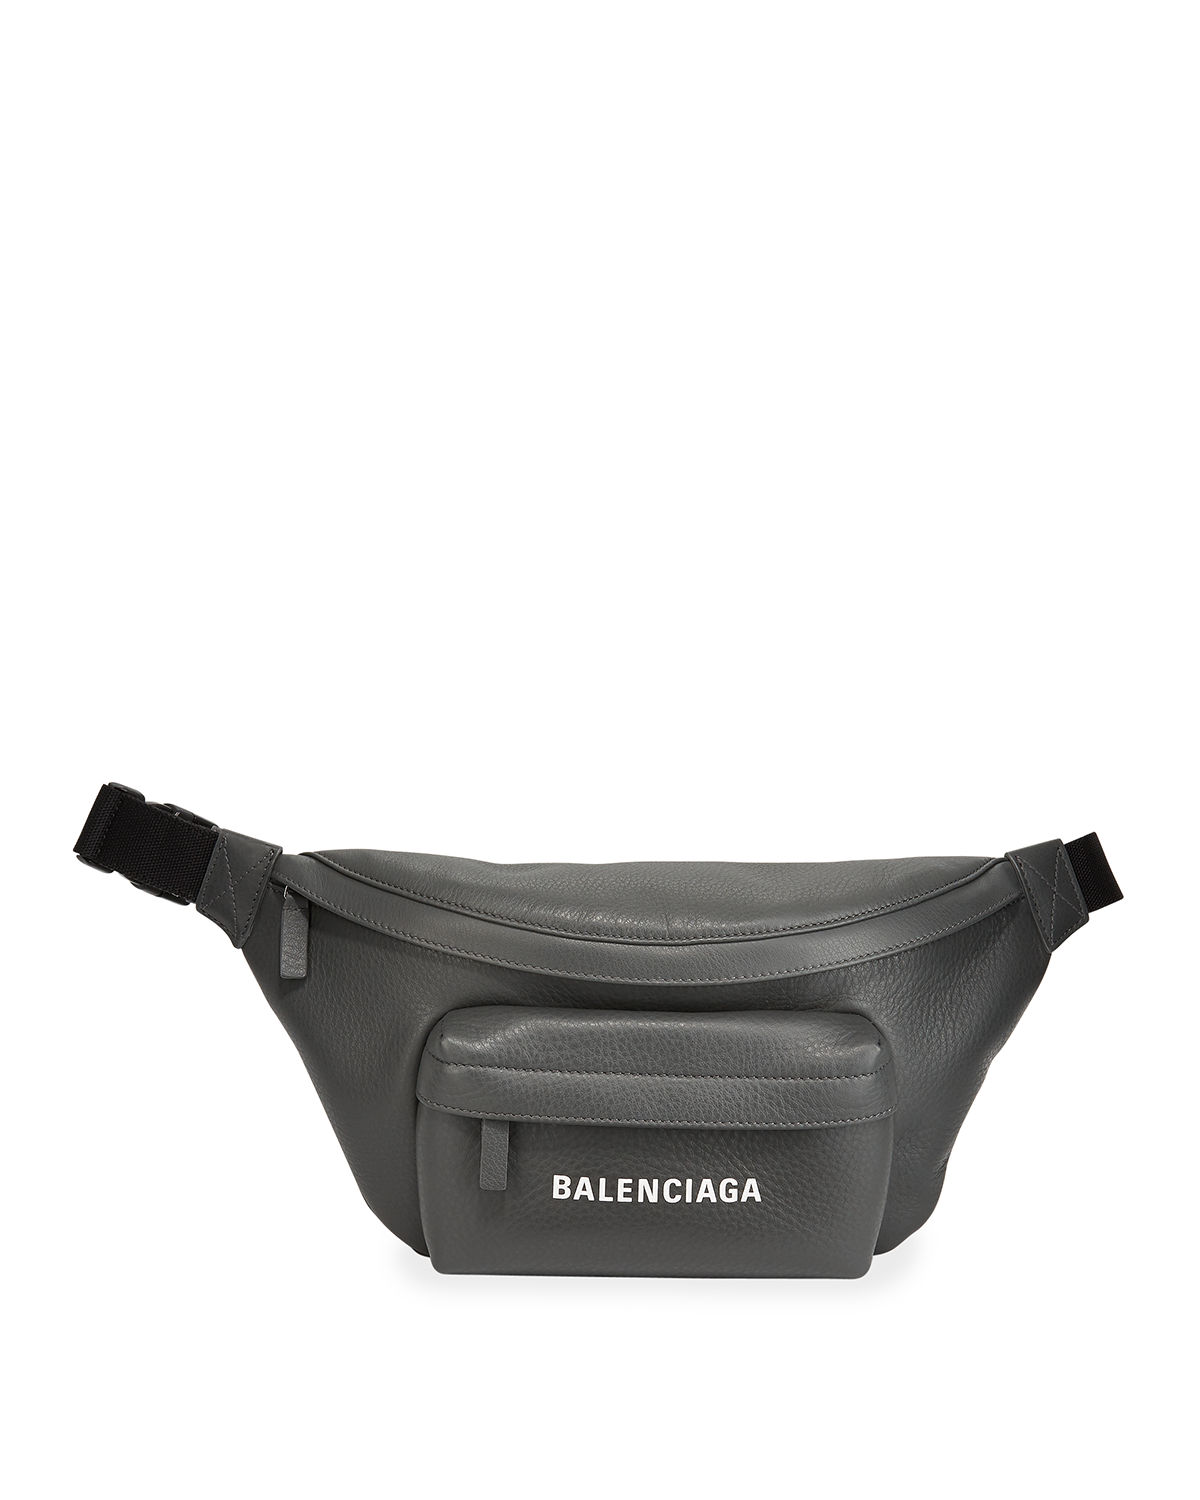 0e5d2aa6b Balenciaga Men s Everyday Leather Belt Bag